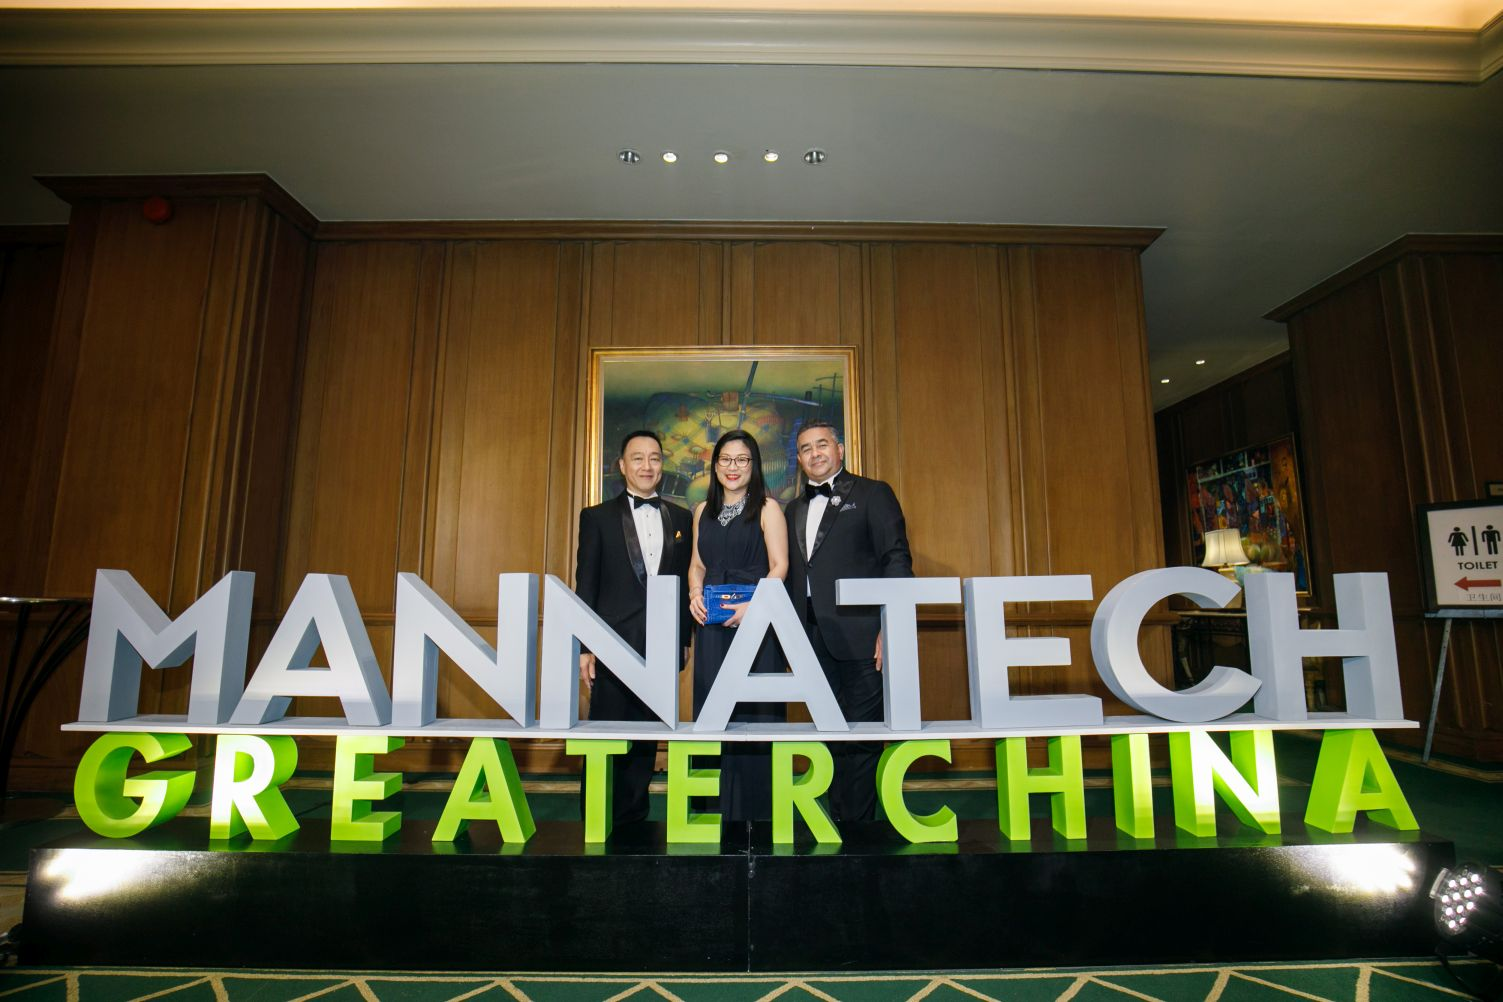 Mannatech Greater China